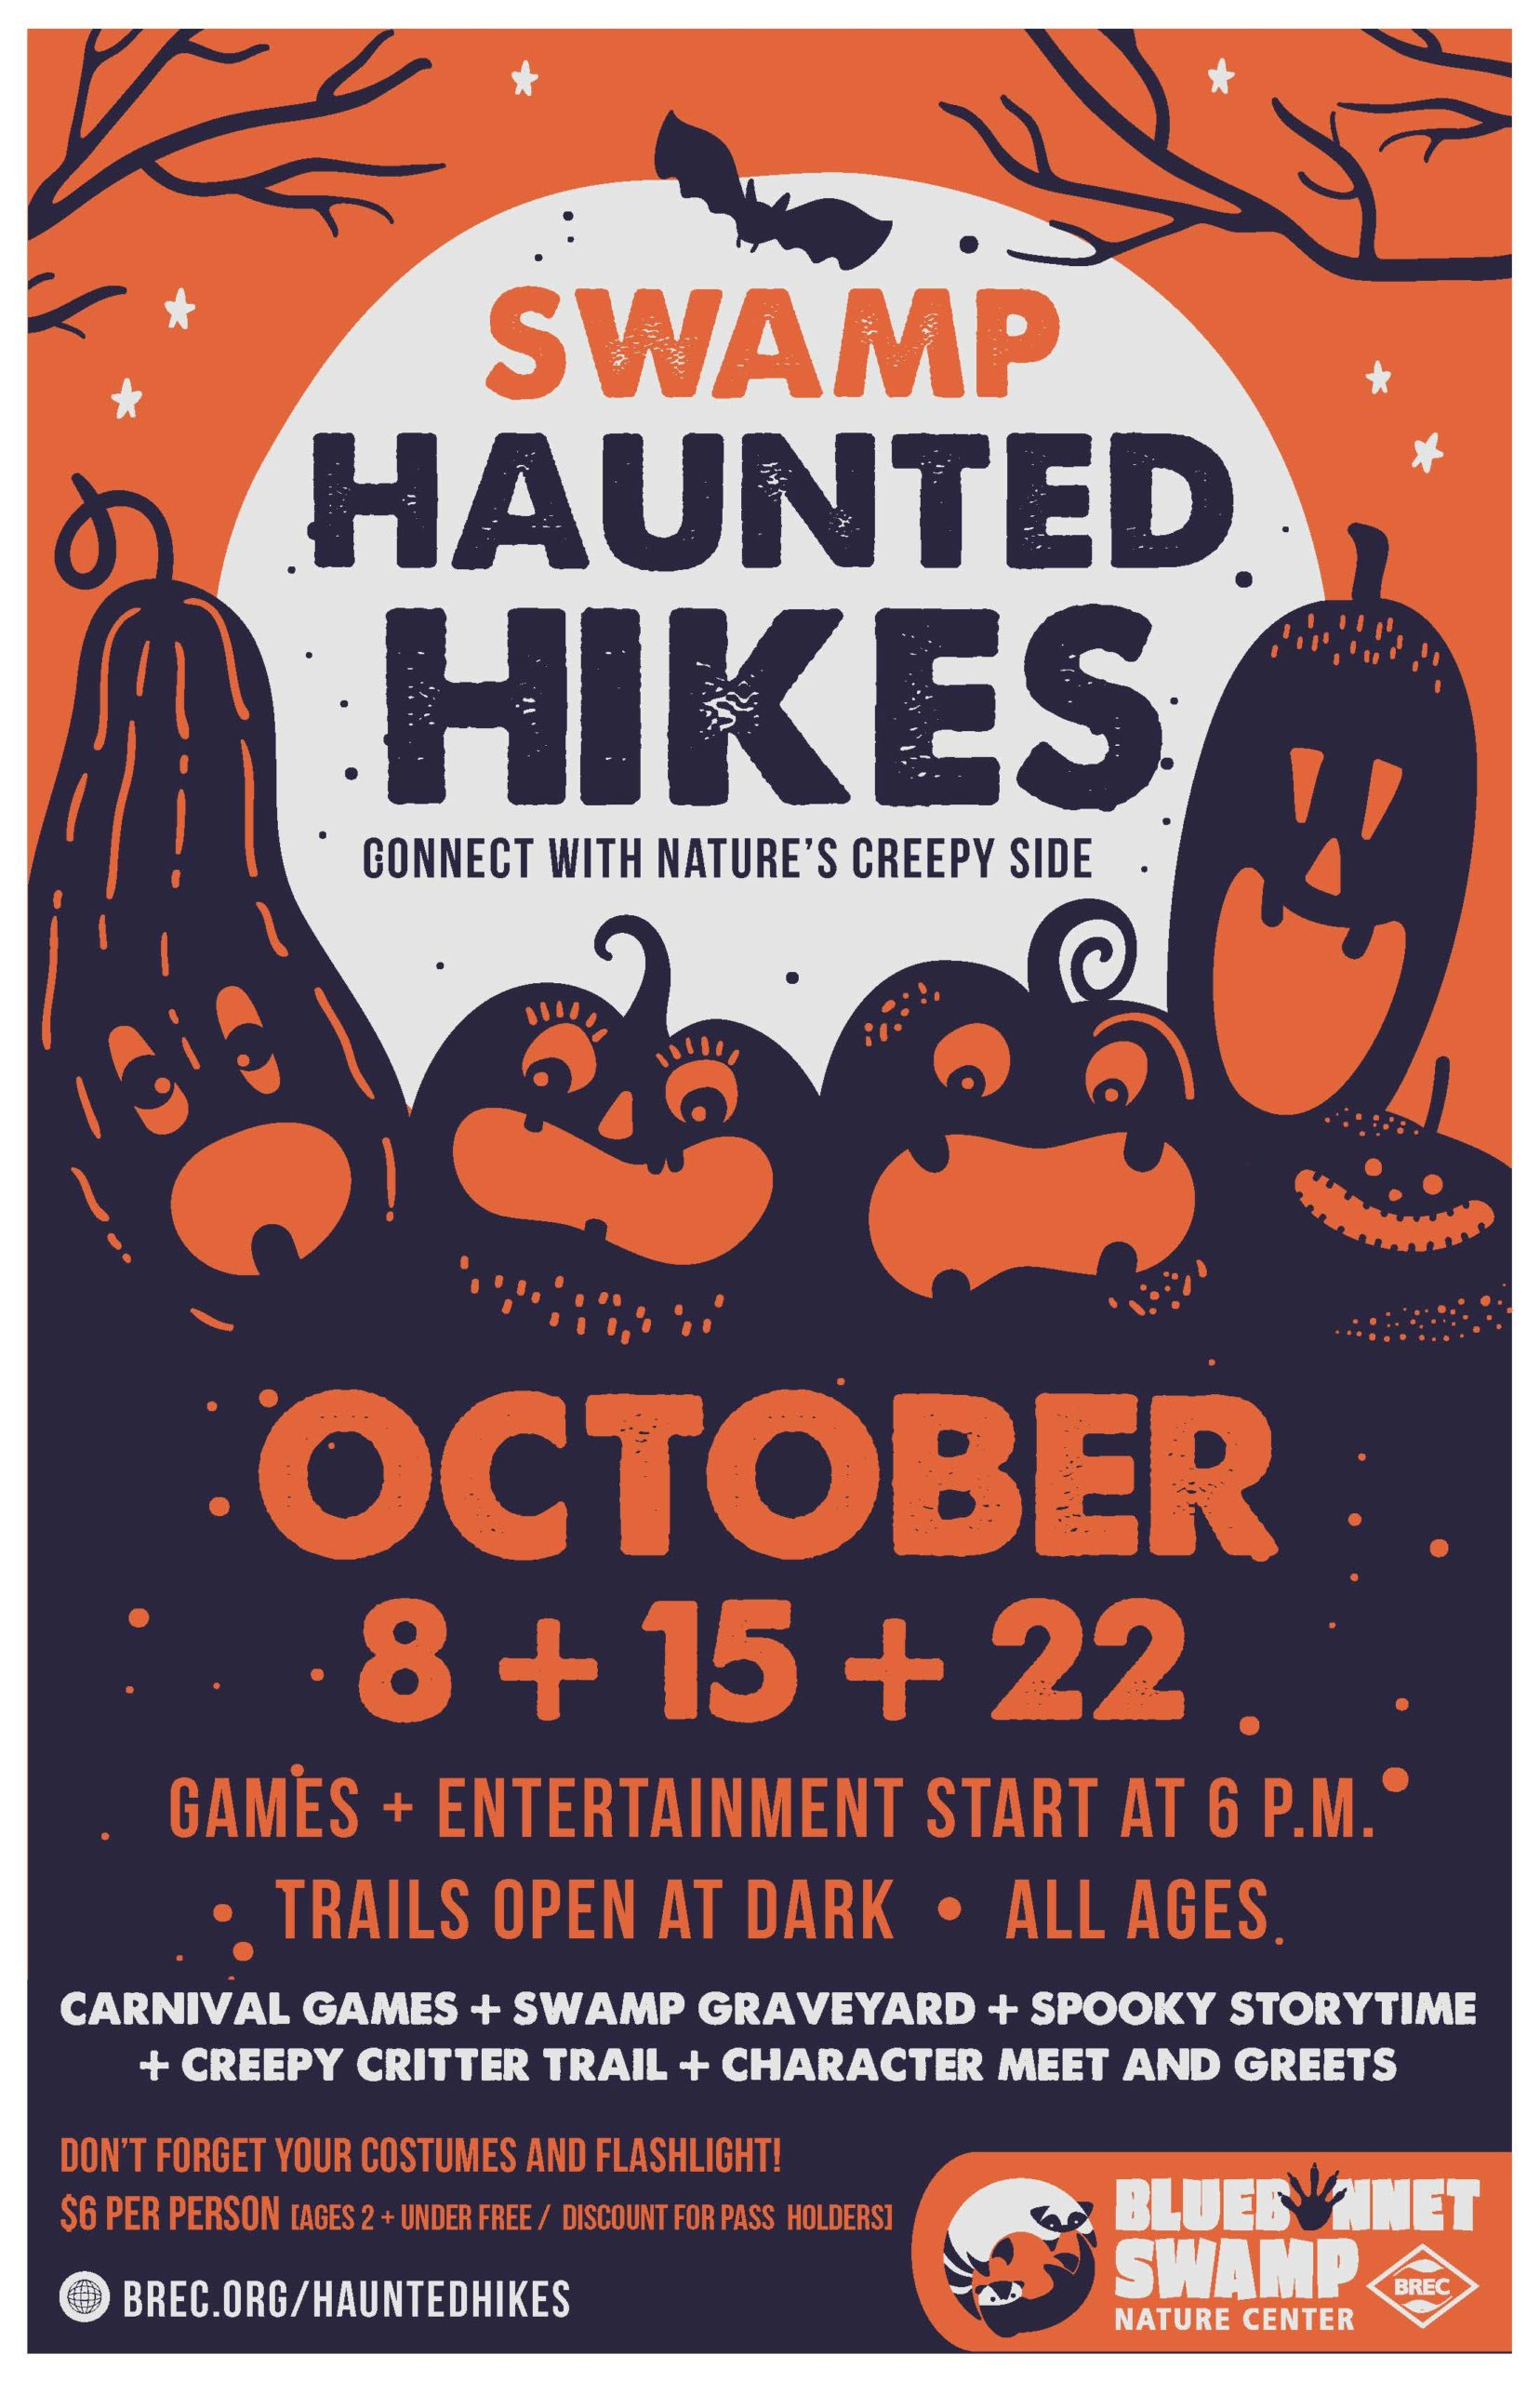 With spooky season offically here and Fall weather (hopefully) coming soon, here's how to enjoy it with some fun activities in/around the Baton Rouge area!